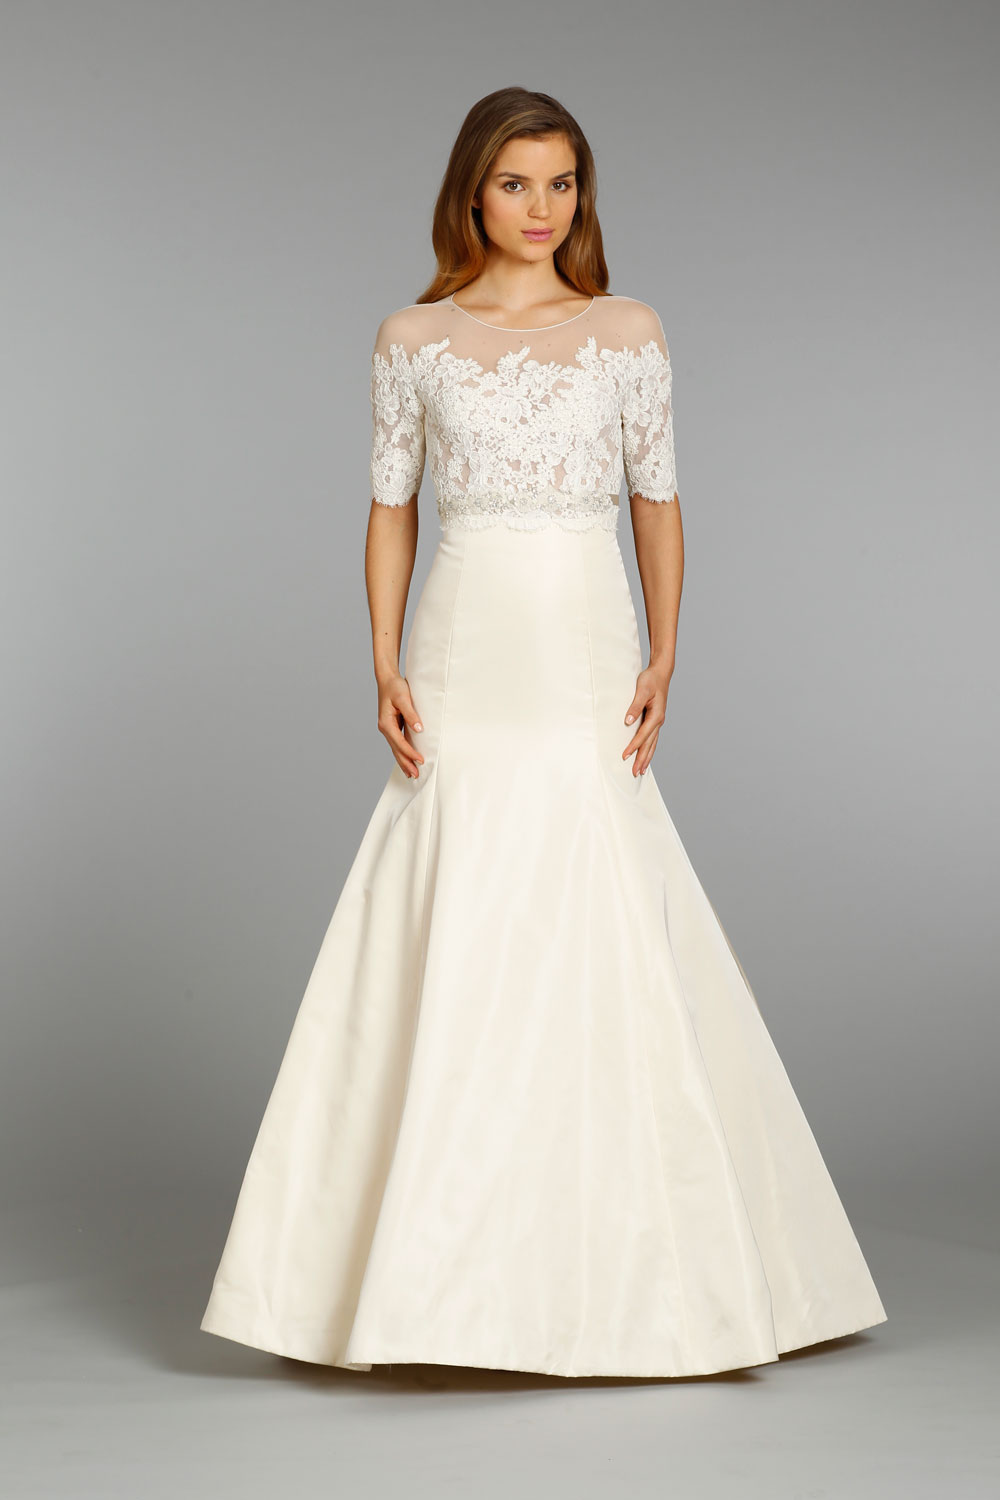 jim hjelm wedding dress fall 2013 bridal 8360